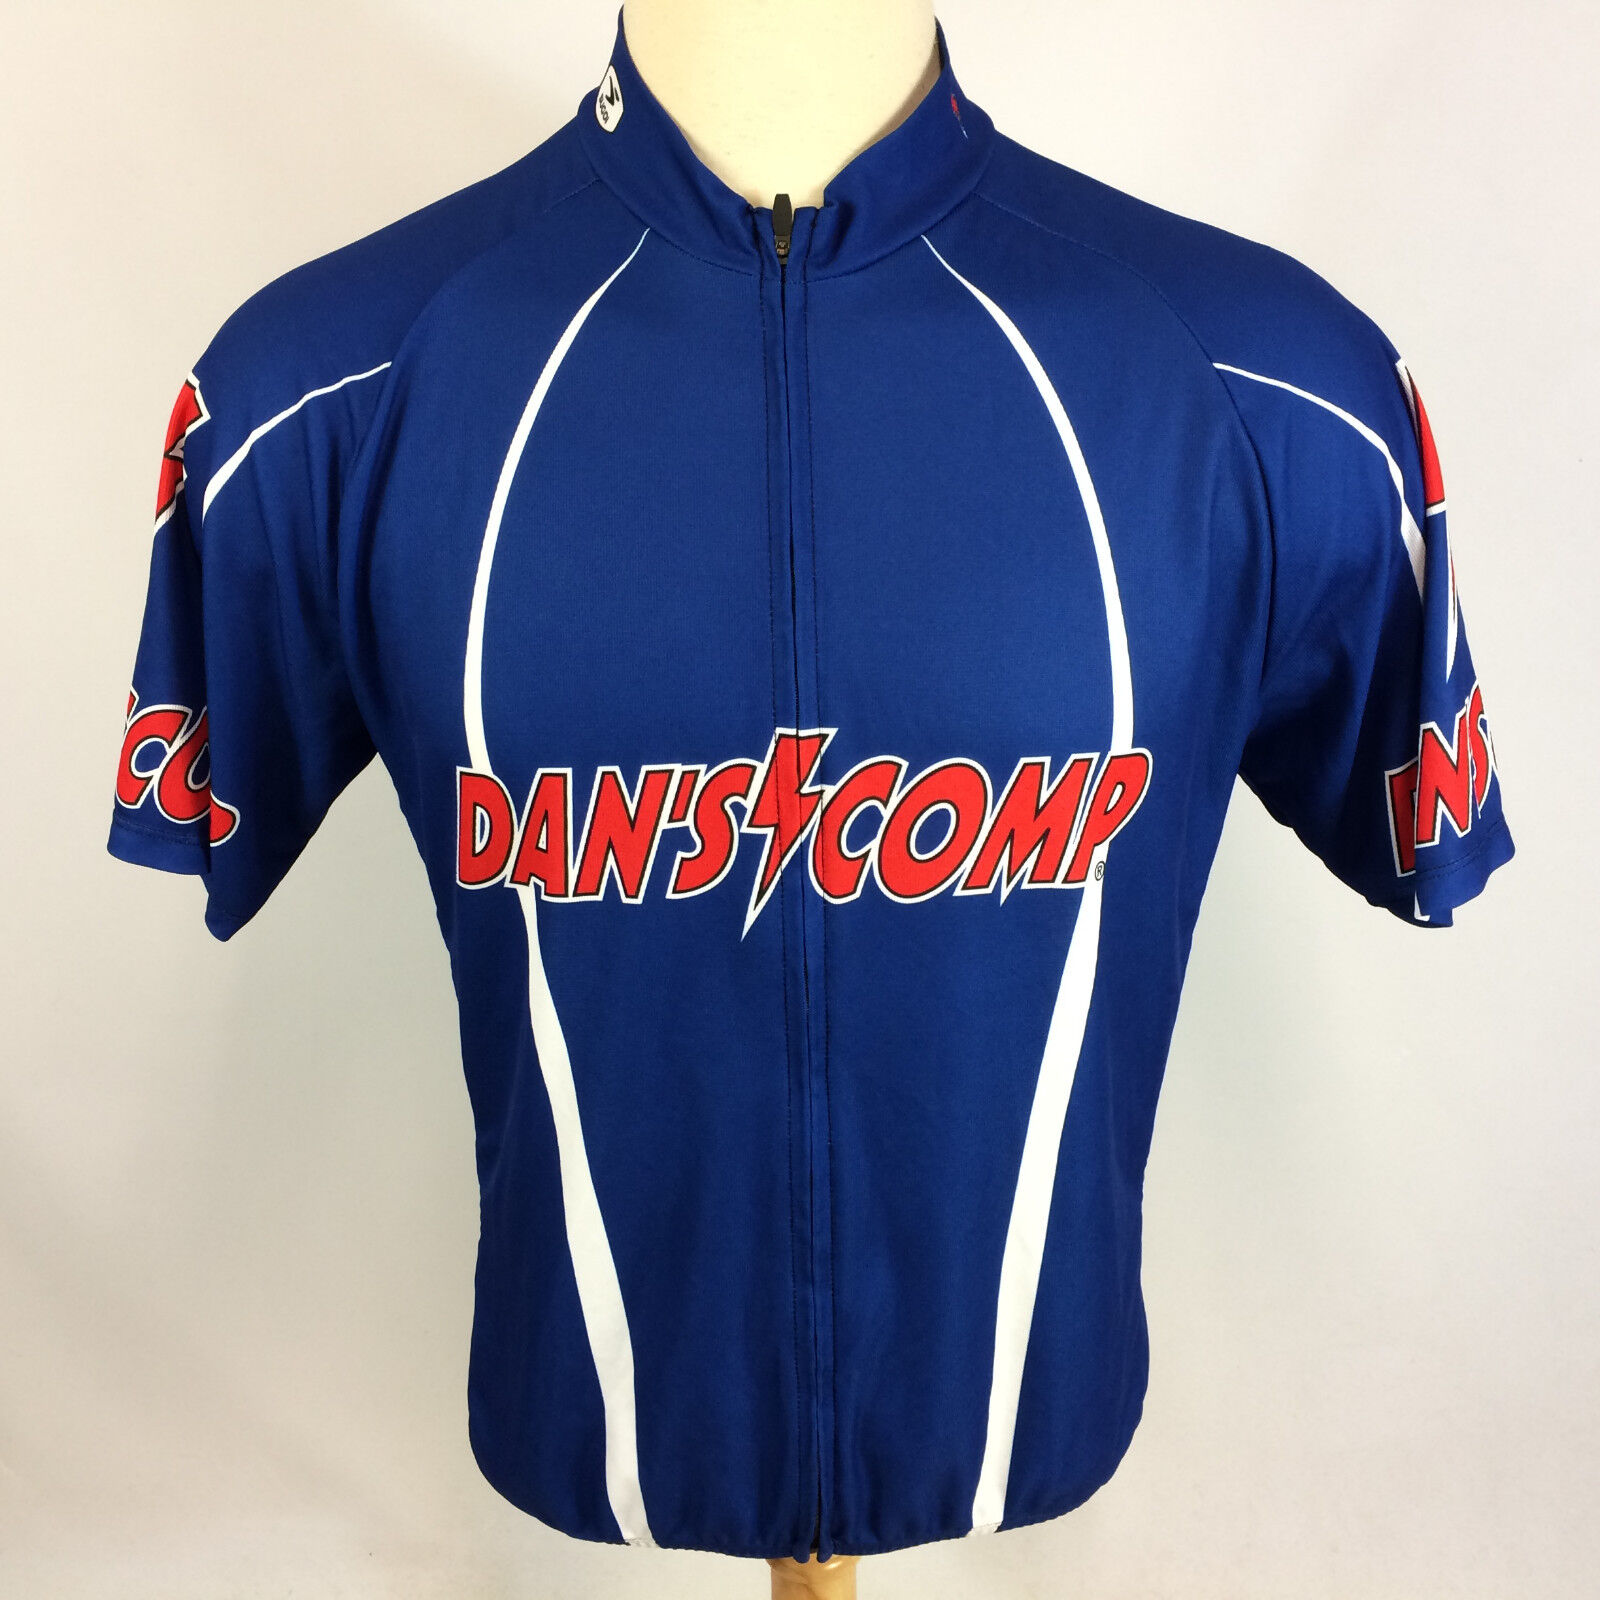 Vintage Dans Competition Cycling Racing Jersey Shirt Comp L